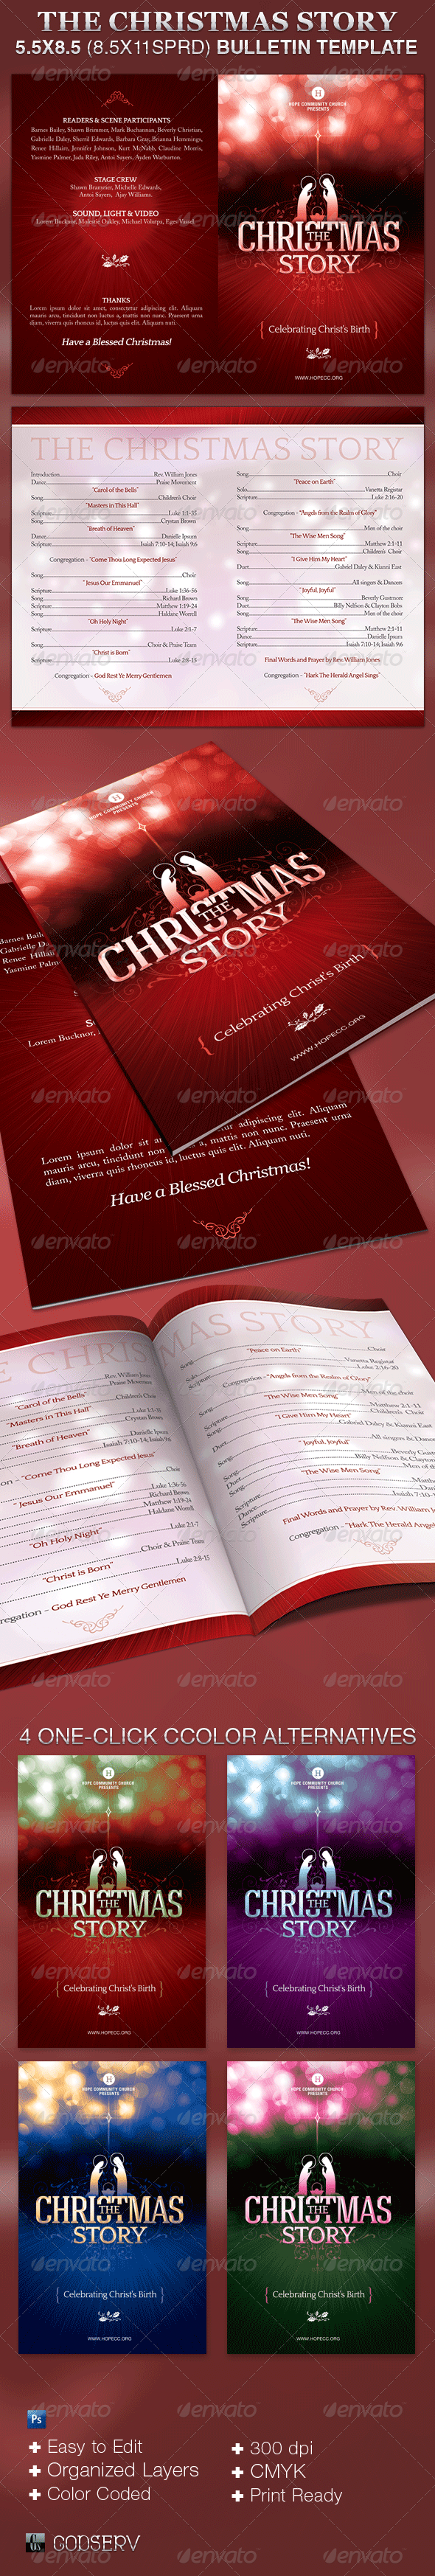 Church Bulletin Template Graphics Designs Templates – Church Bulletin Template